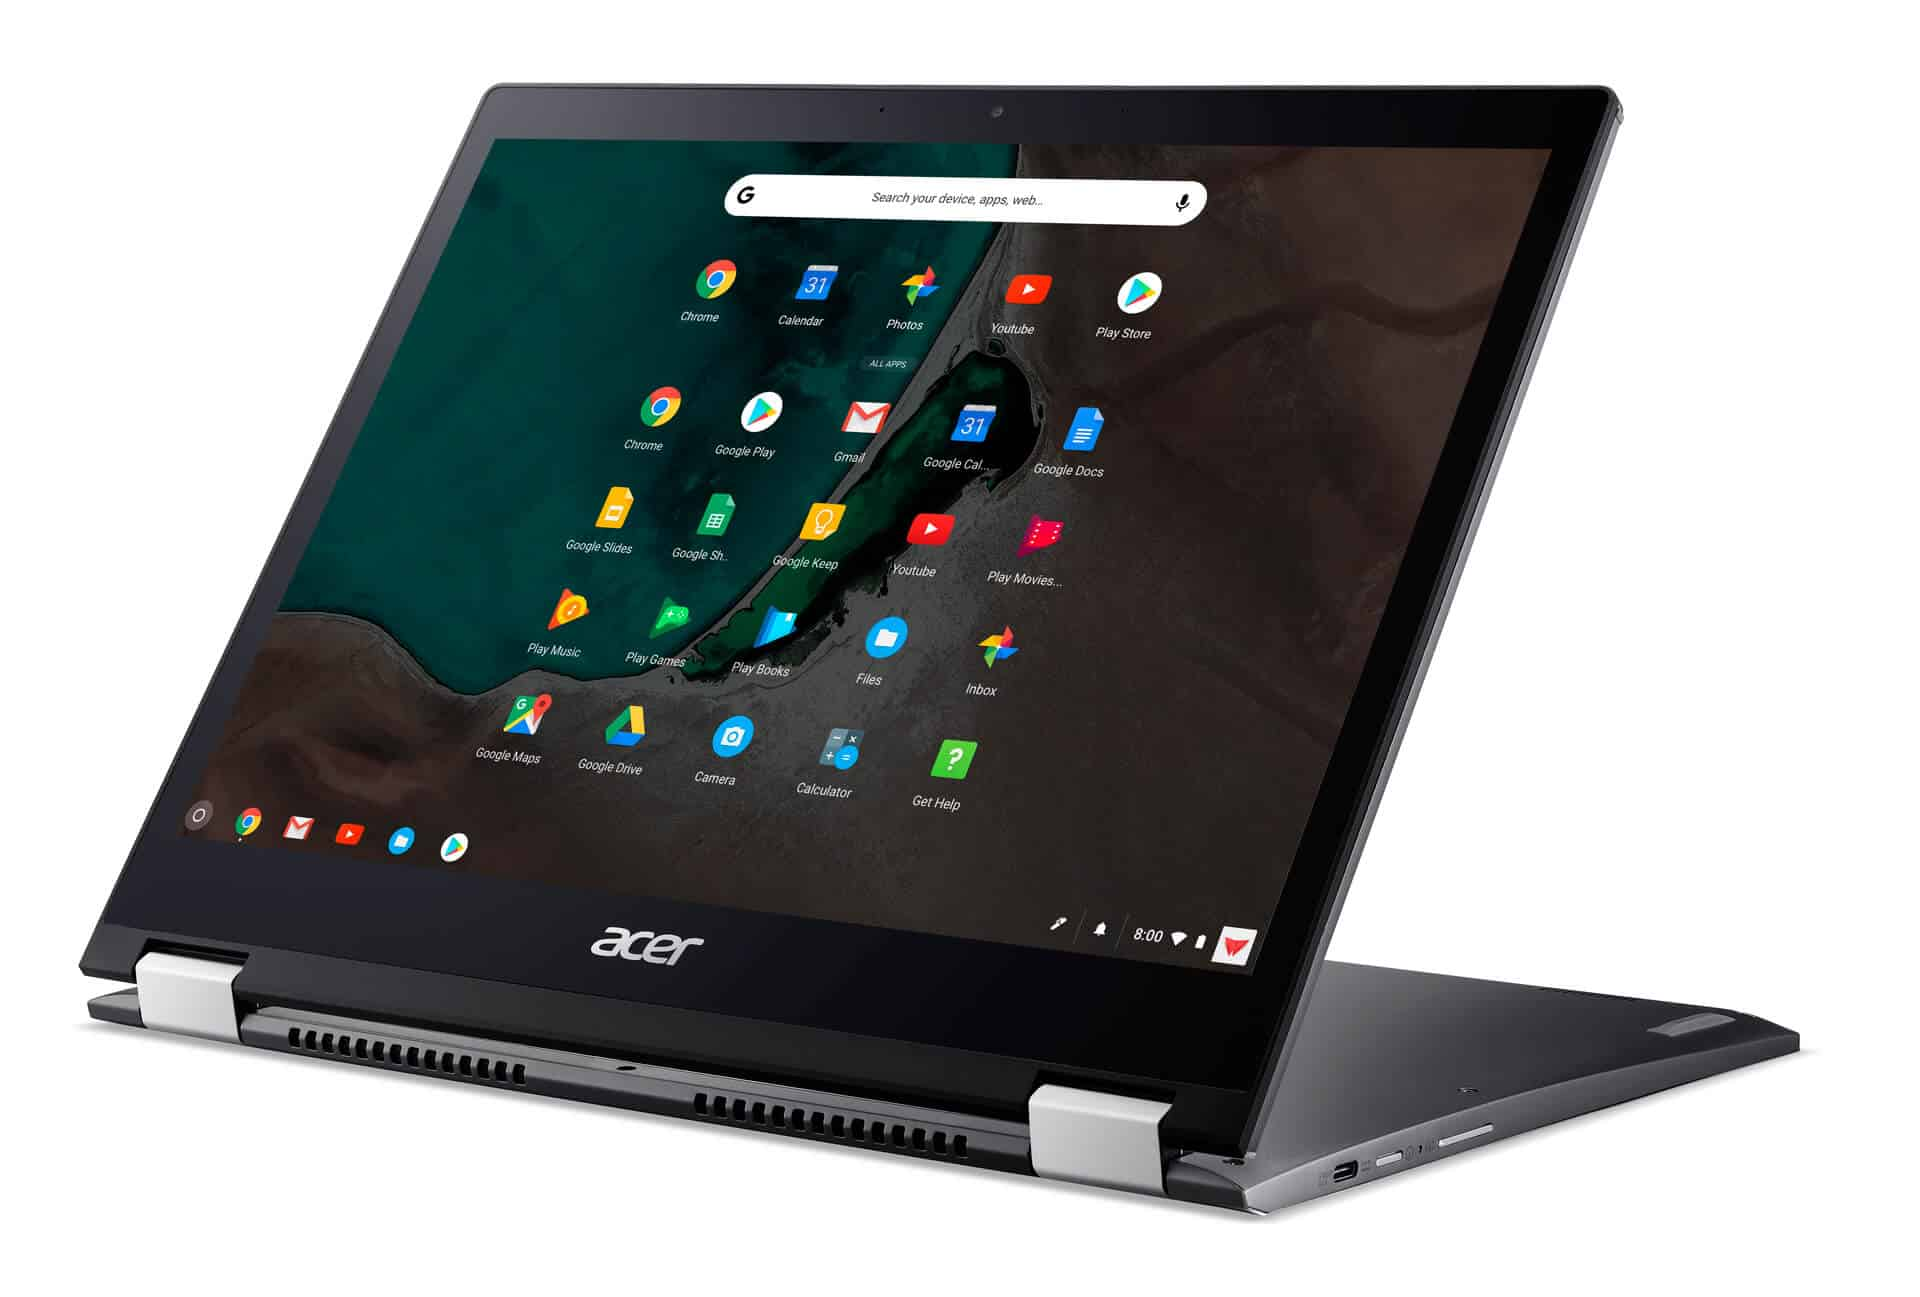 Acer Chromebook Spin 13 Play store display mode from Acer 07